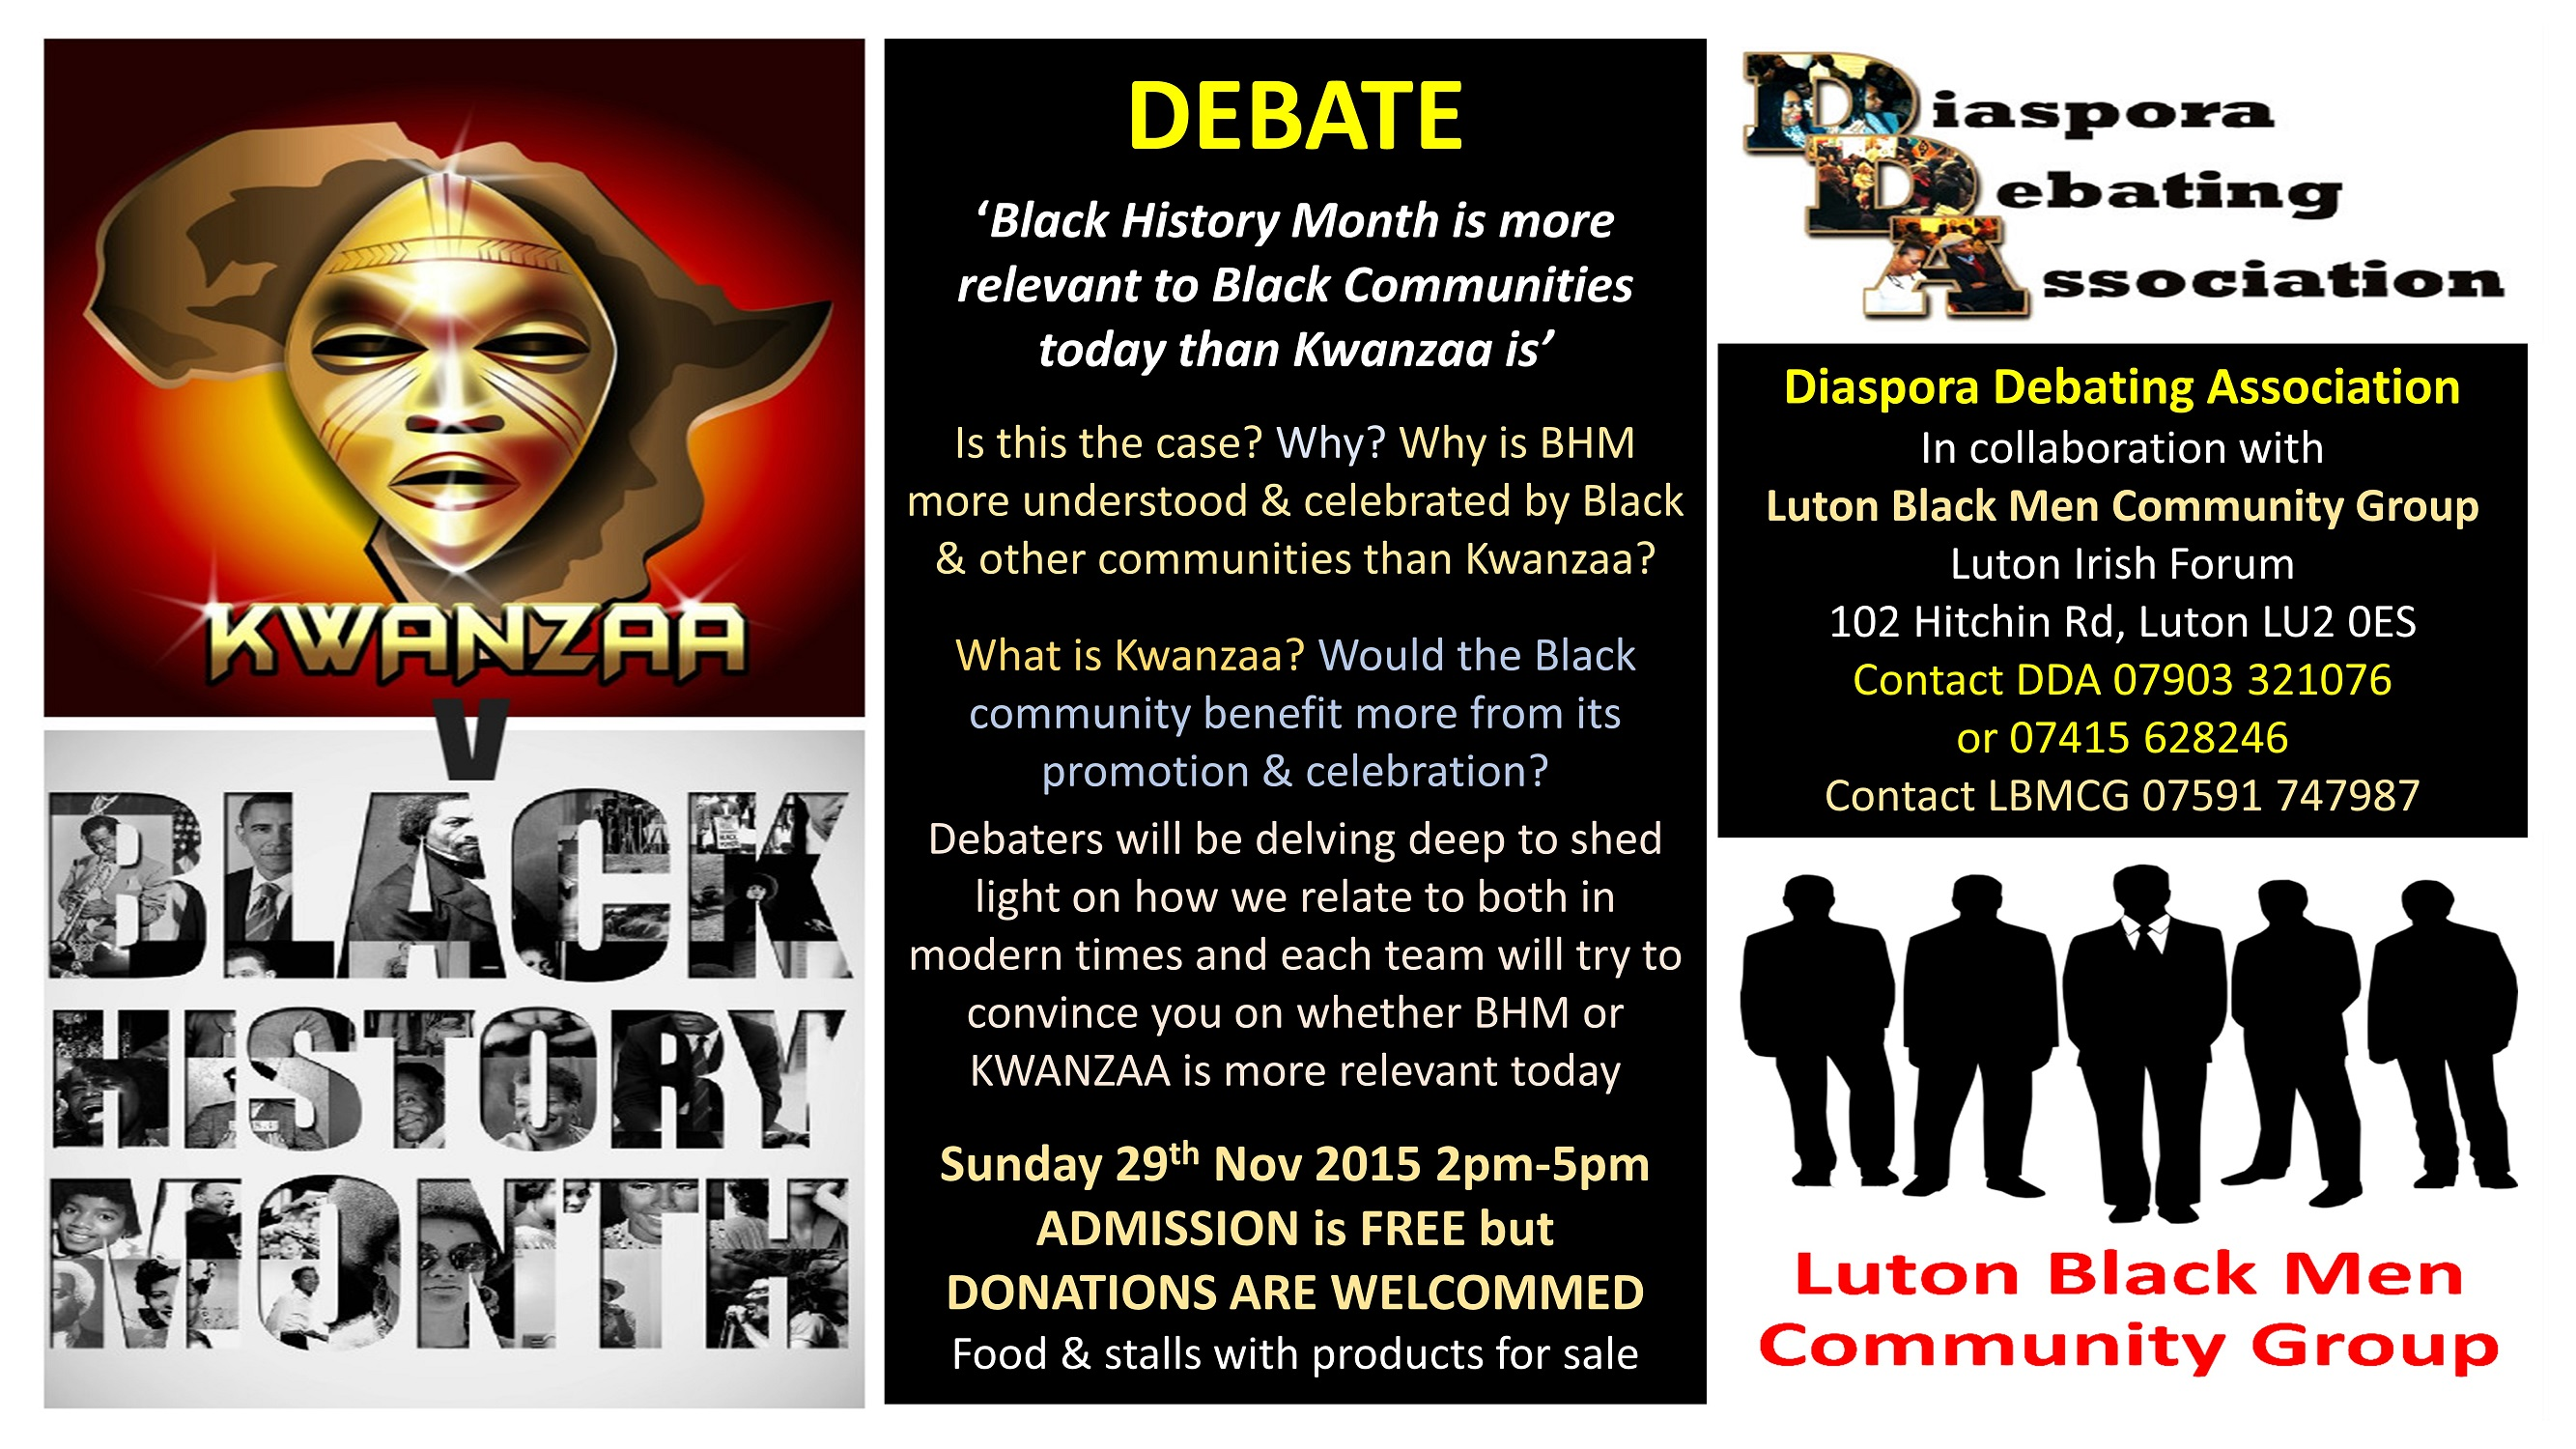 LBMCG DDA Debate LU2 0ES Sun 29th Nov 2-5pm